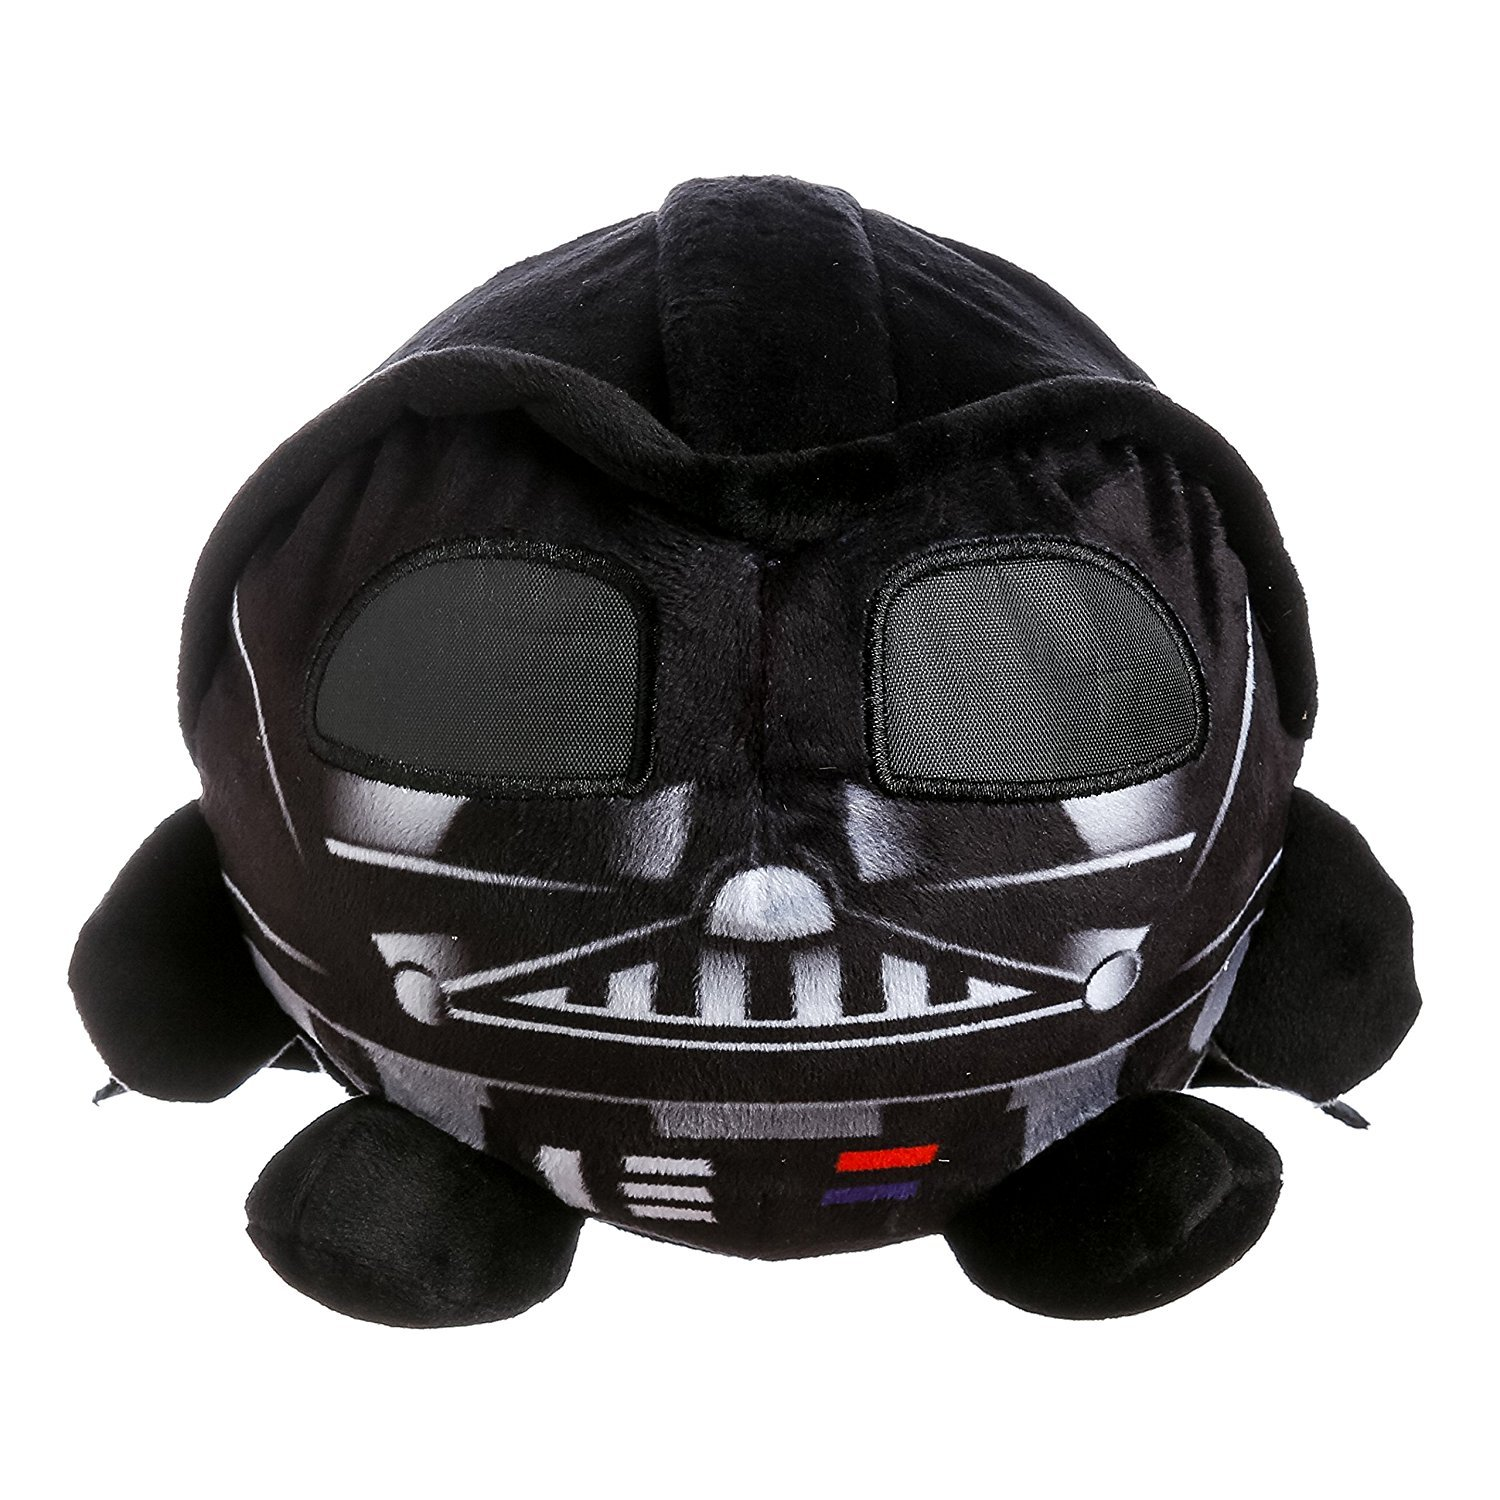 Star Wars Palz Plush Night Light 6inch Height 8inch Wide Perfect Nightstand Pal for Your Little Padawan! Darth Vader /& Stormtrooper